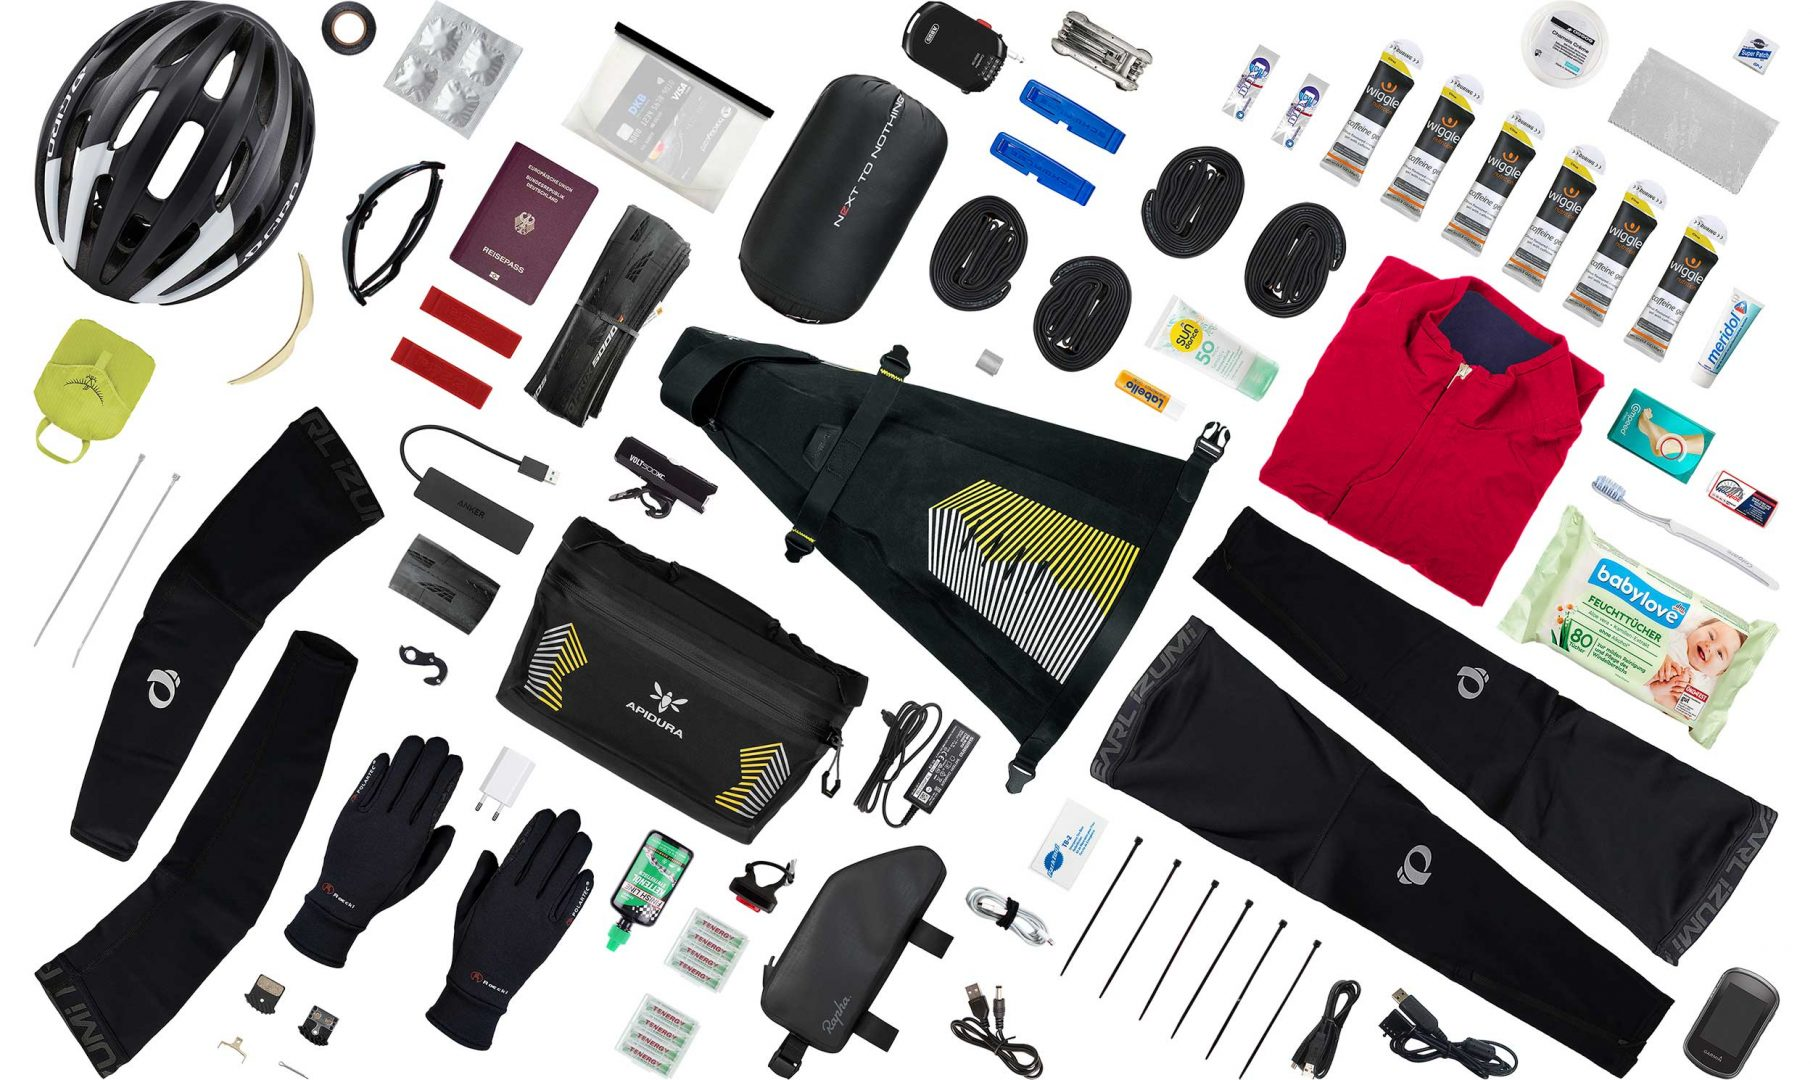 Full bikepacking kit Grid used by Fiona Kolbinger's on TCR7, this includes the saddle and handlebar bag